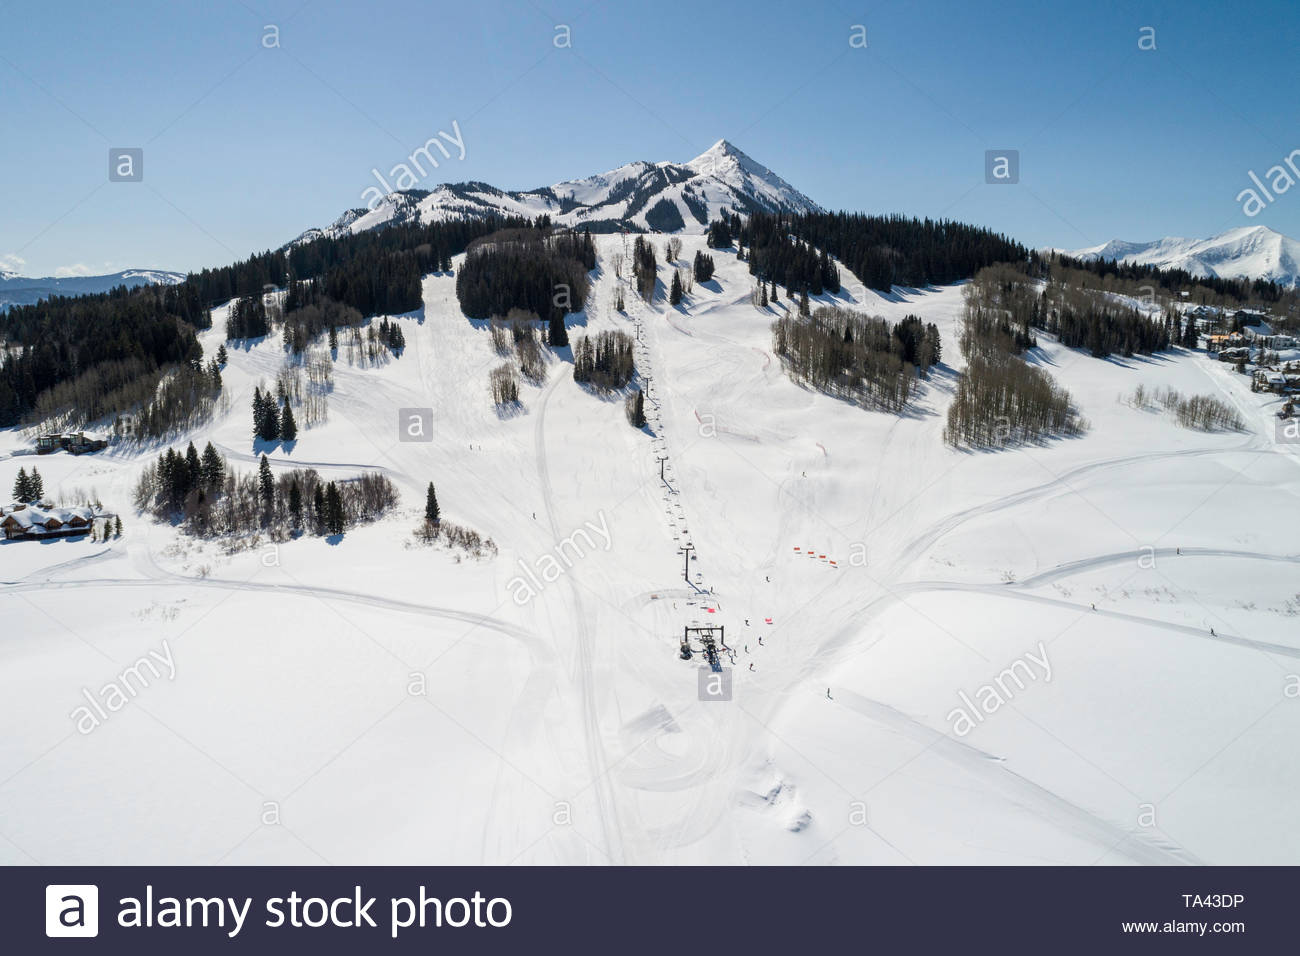 Aerial view of the Gold Link chair lift with the peak of Crested Butte Mountain in the distance. Stock Photo